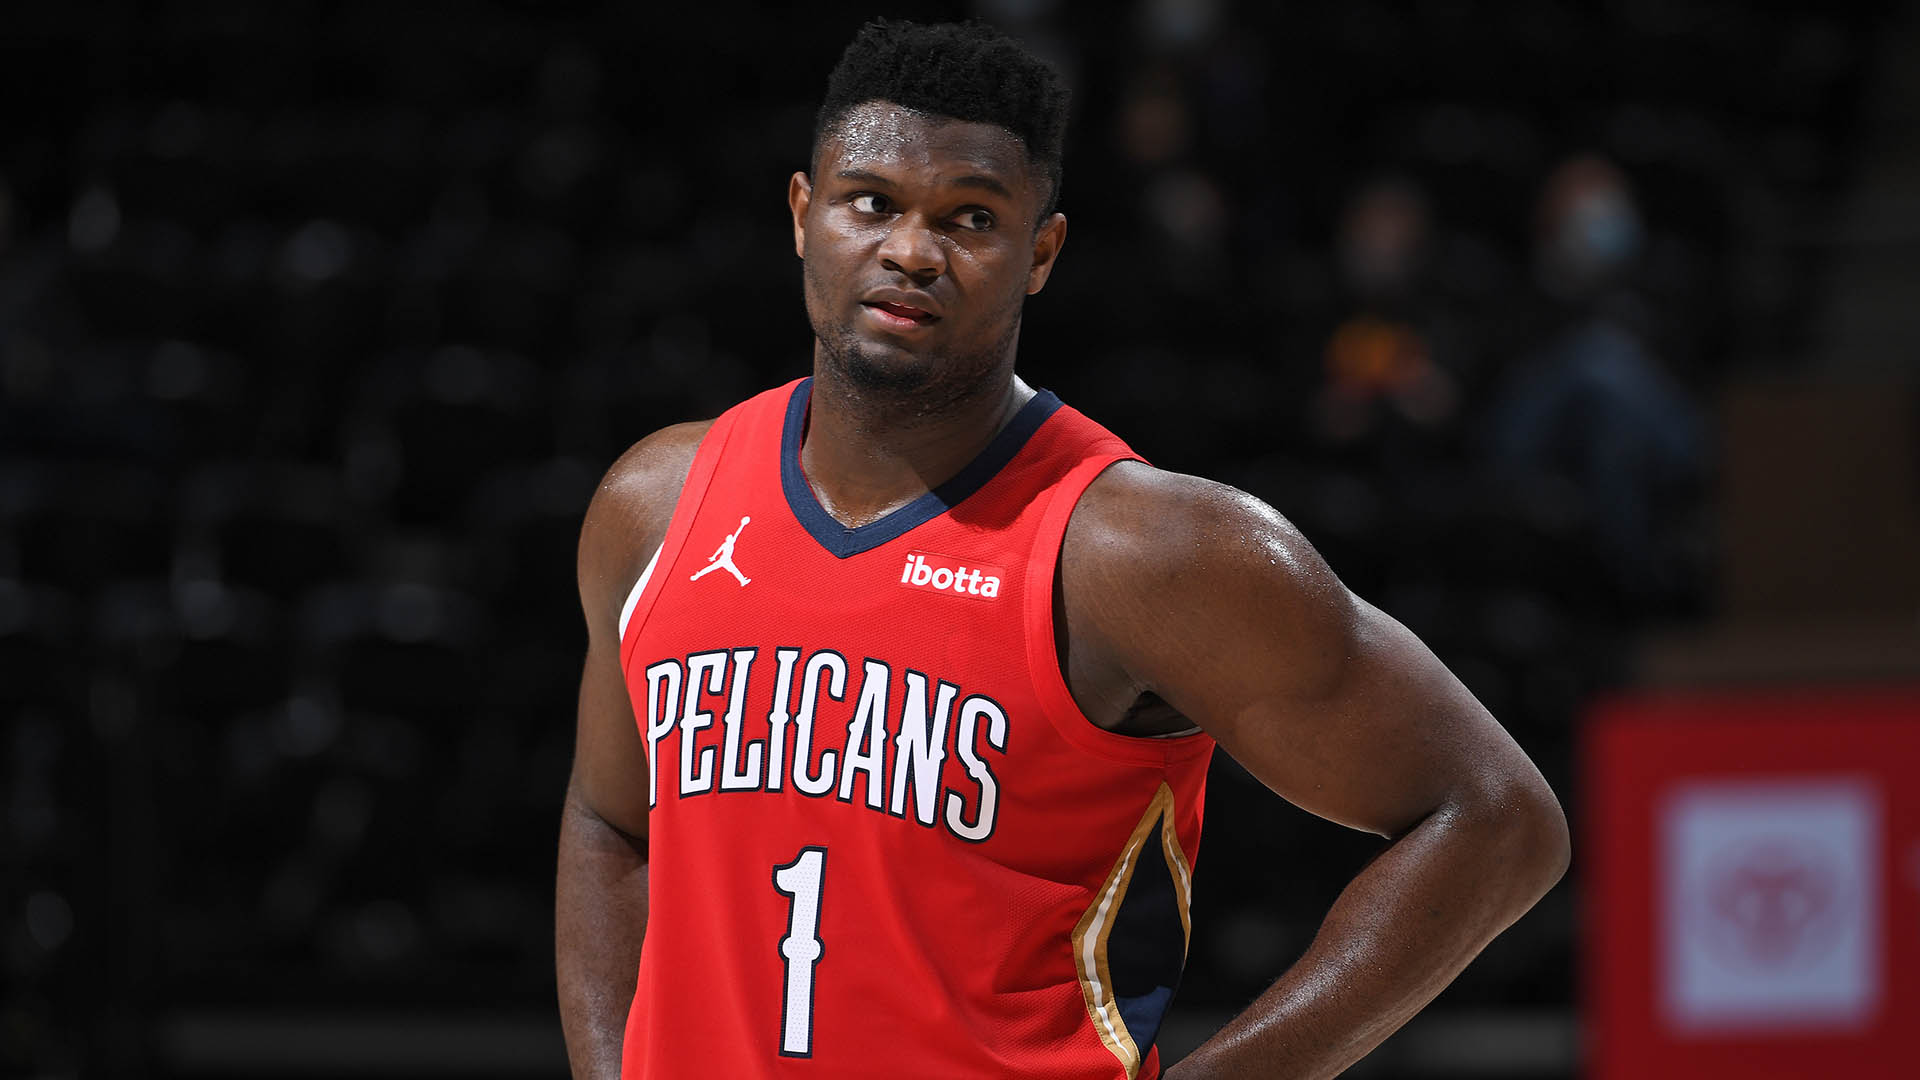 Zion Williamson to replace Joel Embiid in Team Durant starting lineup